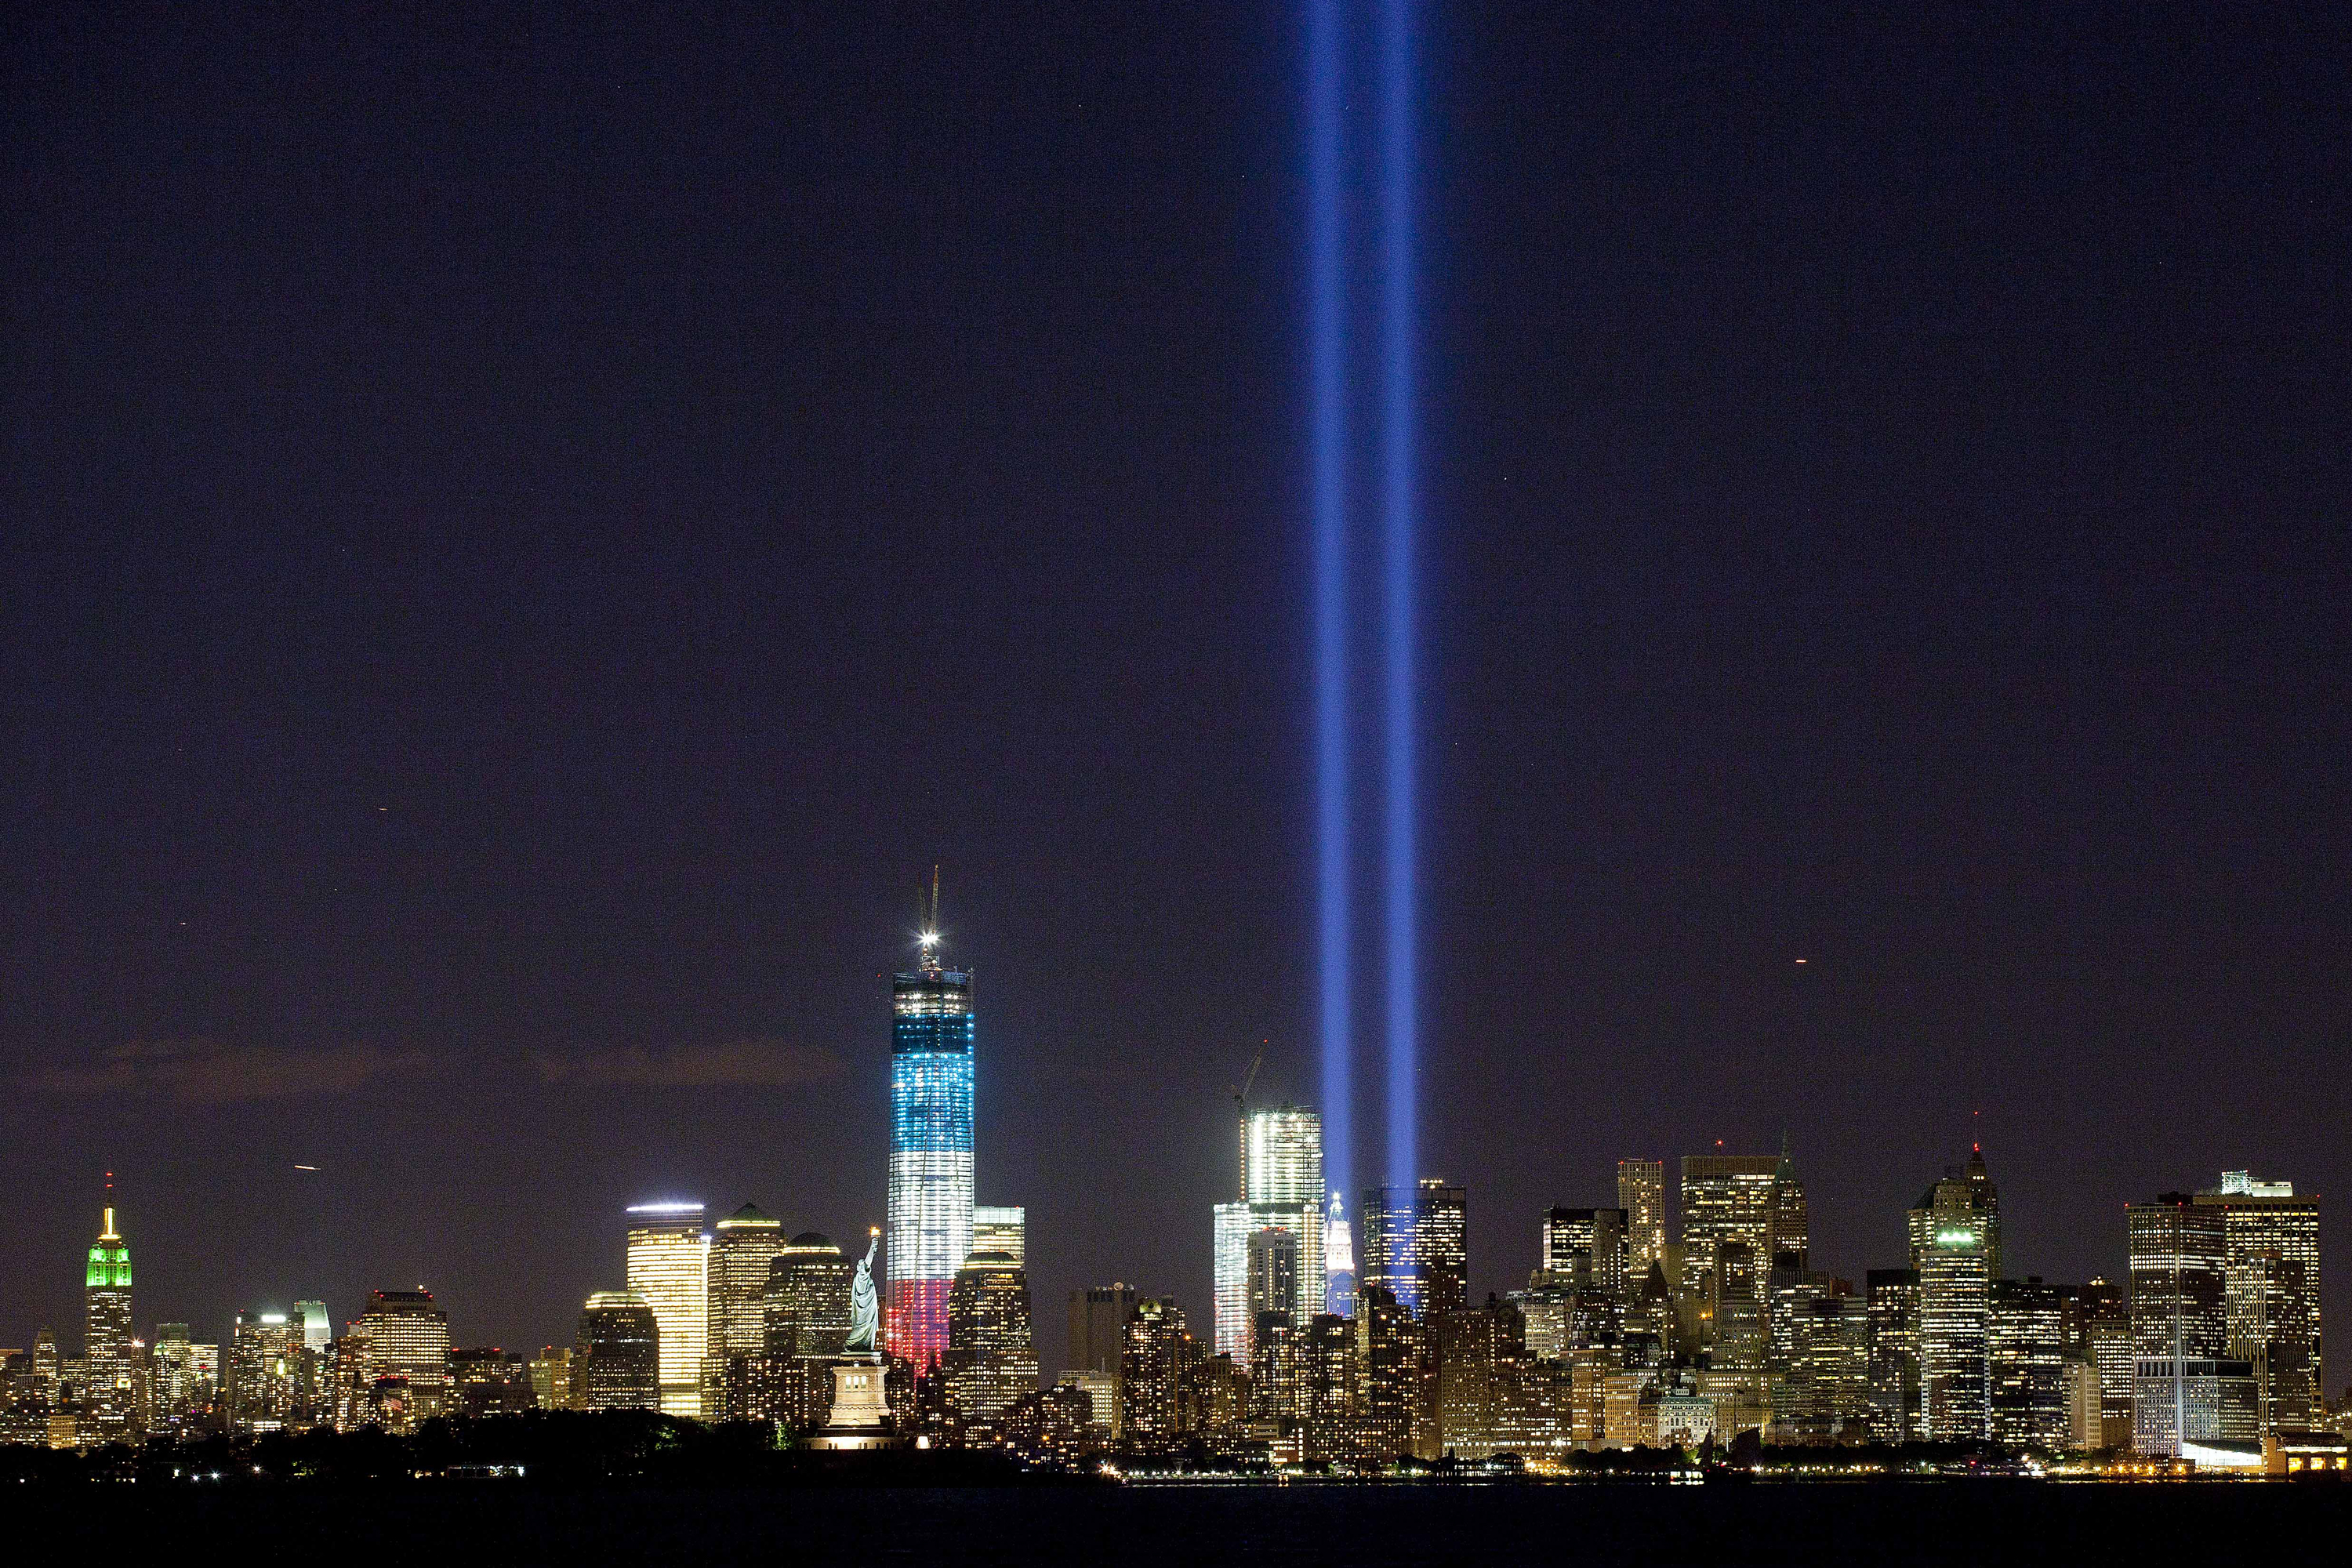 The Tribute in Light shines above the World Trade Center and the Statue of Liberty on Monday as seen from Bayonne, N.J. Tuesday marks the 11th anniversary of the attack that destroyed the twin towers.